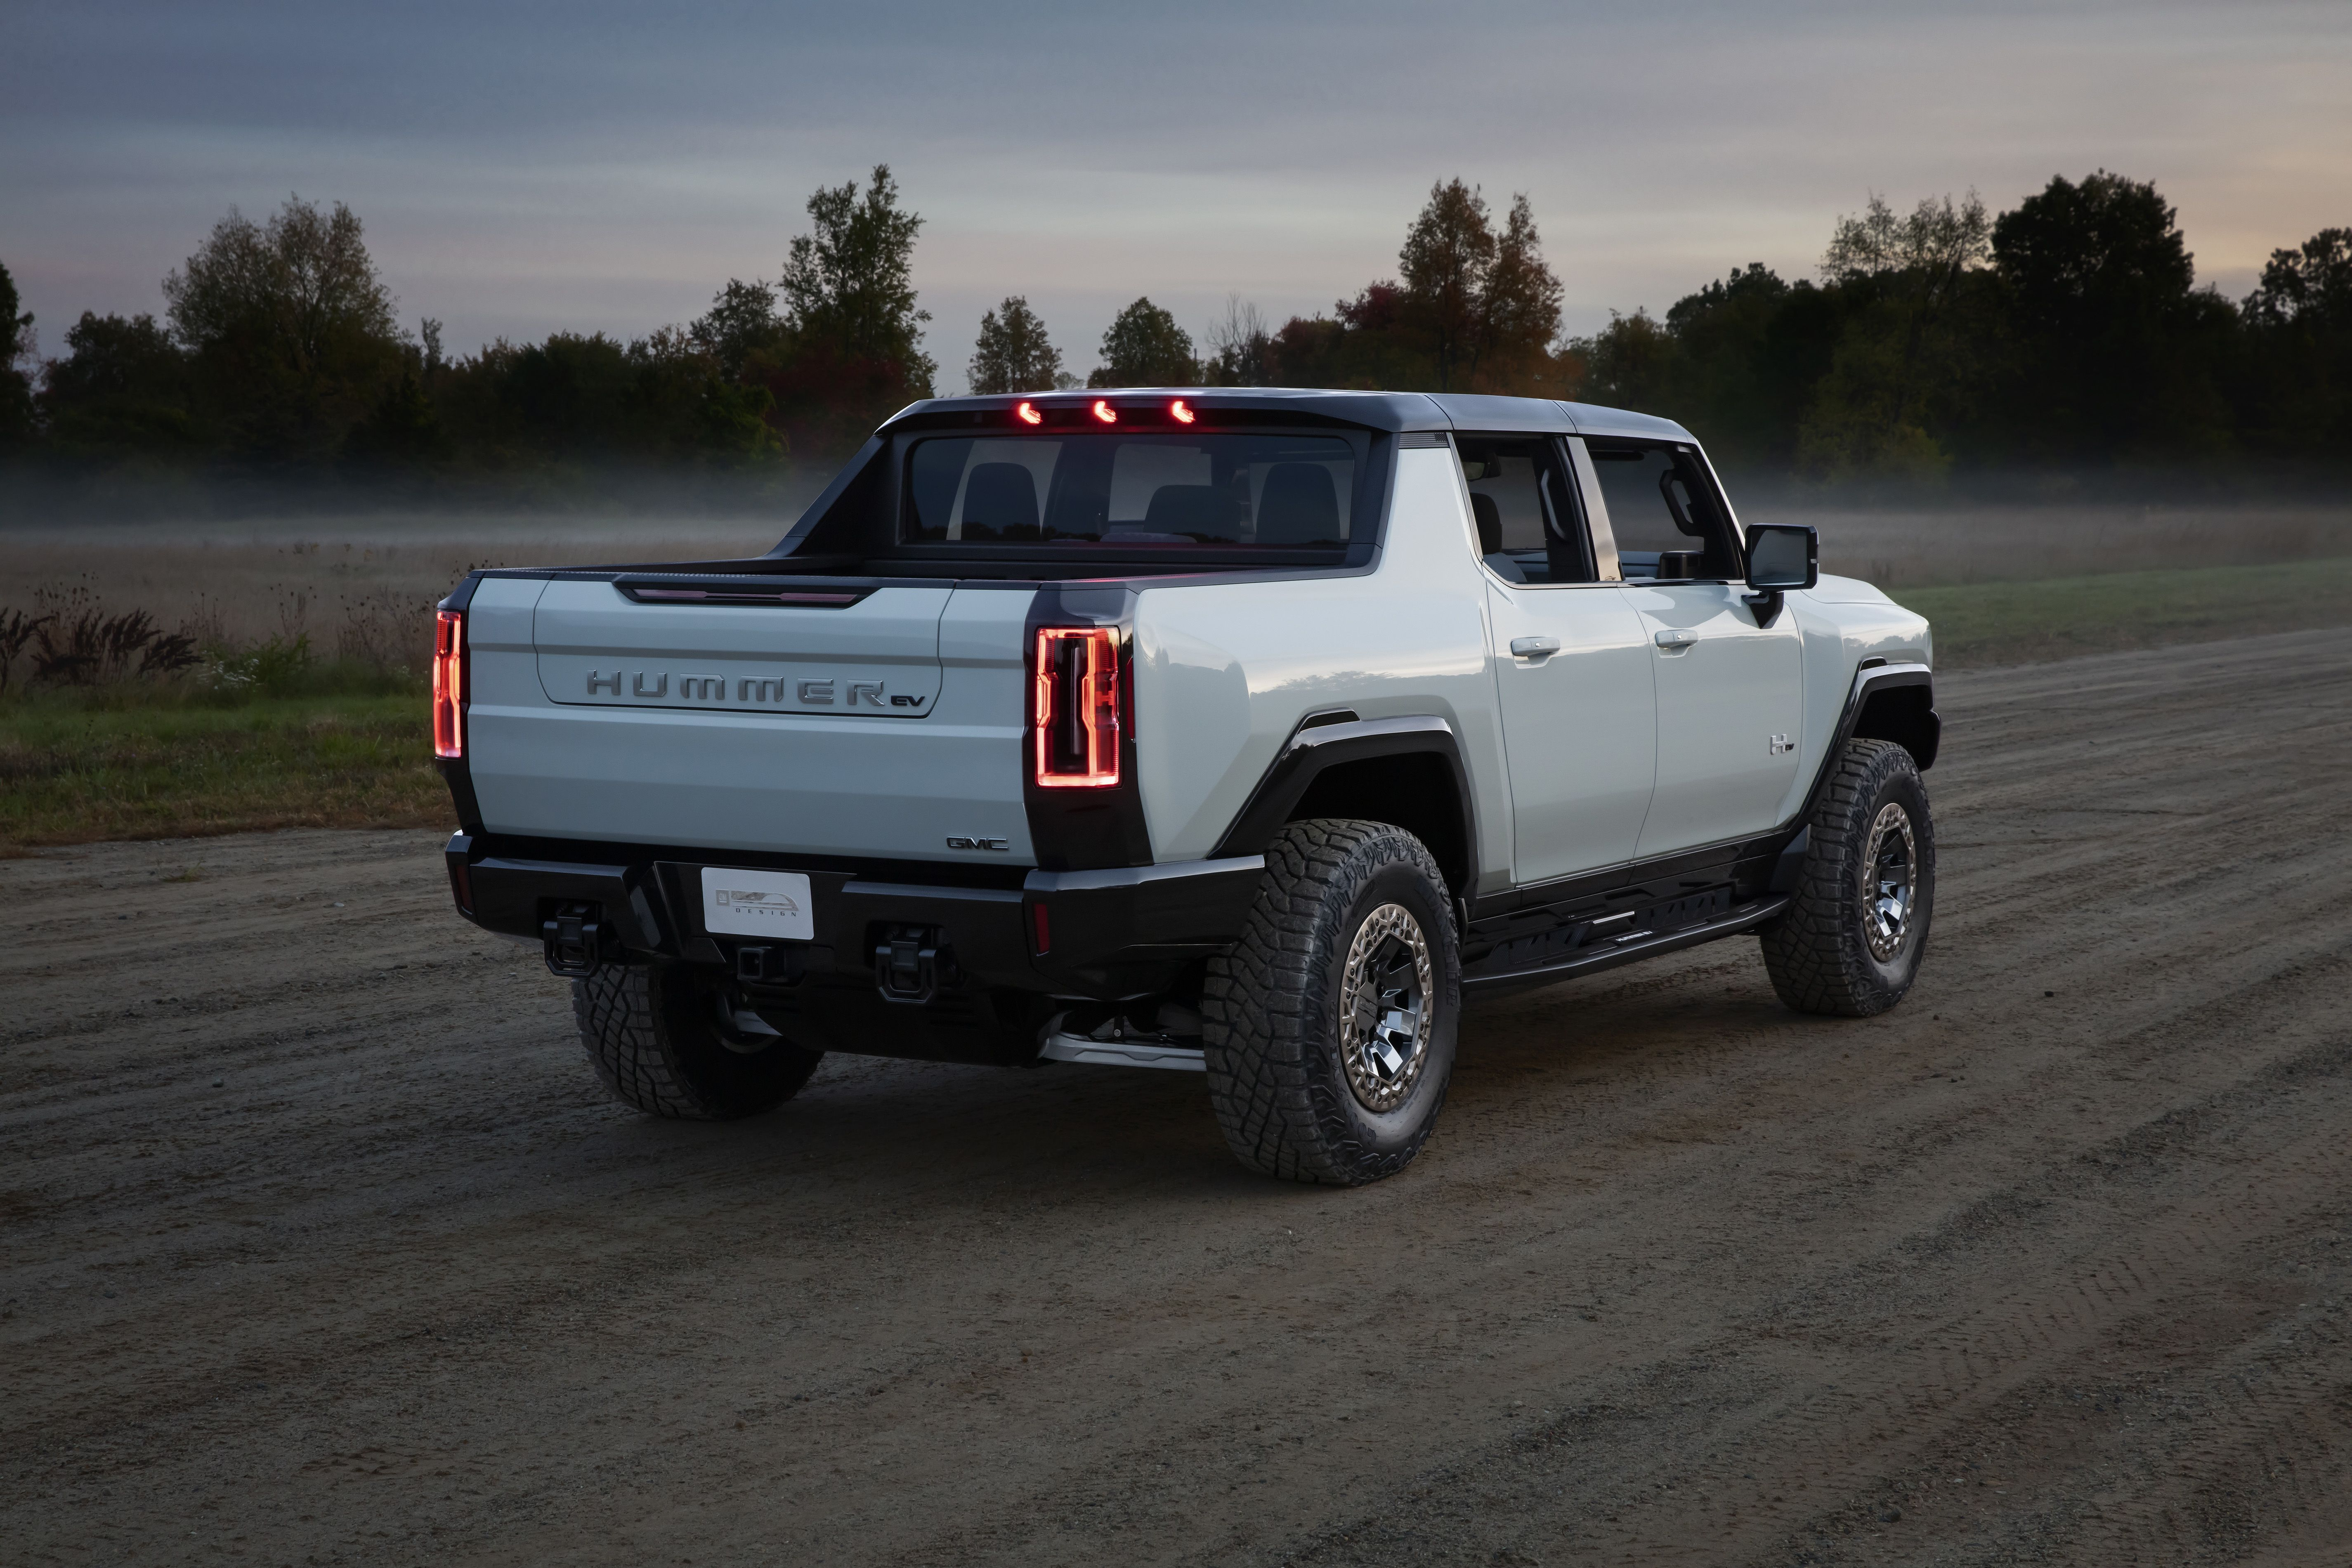 How GMC Got 11,500 Lb-Ft of Torque From the Electric Hummer